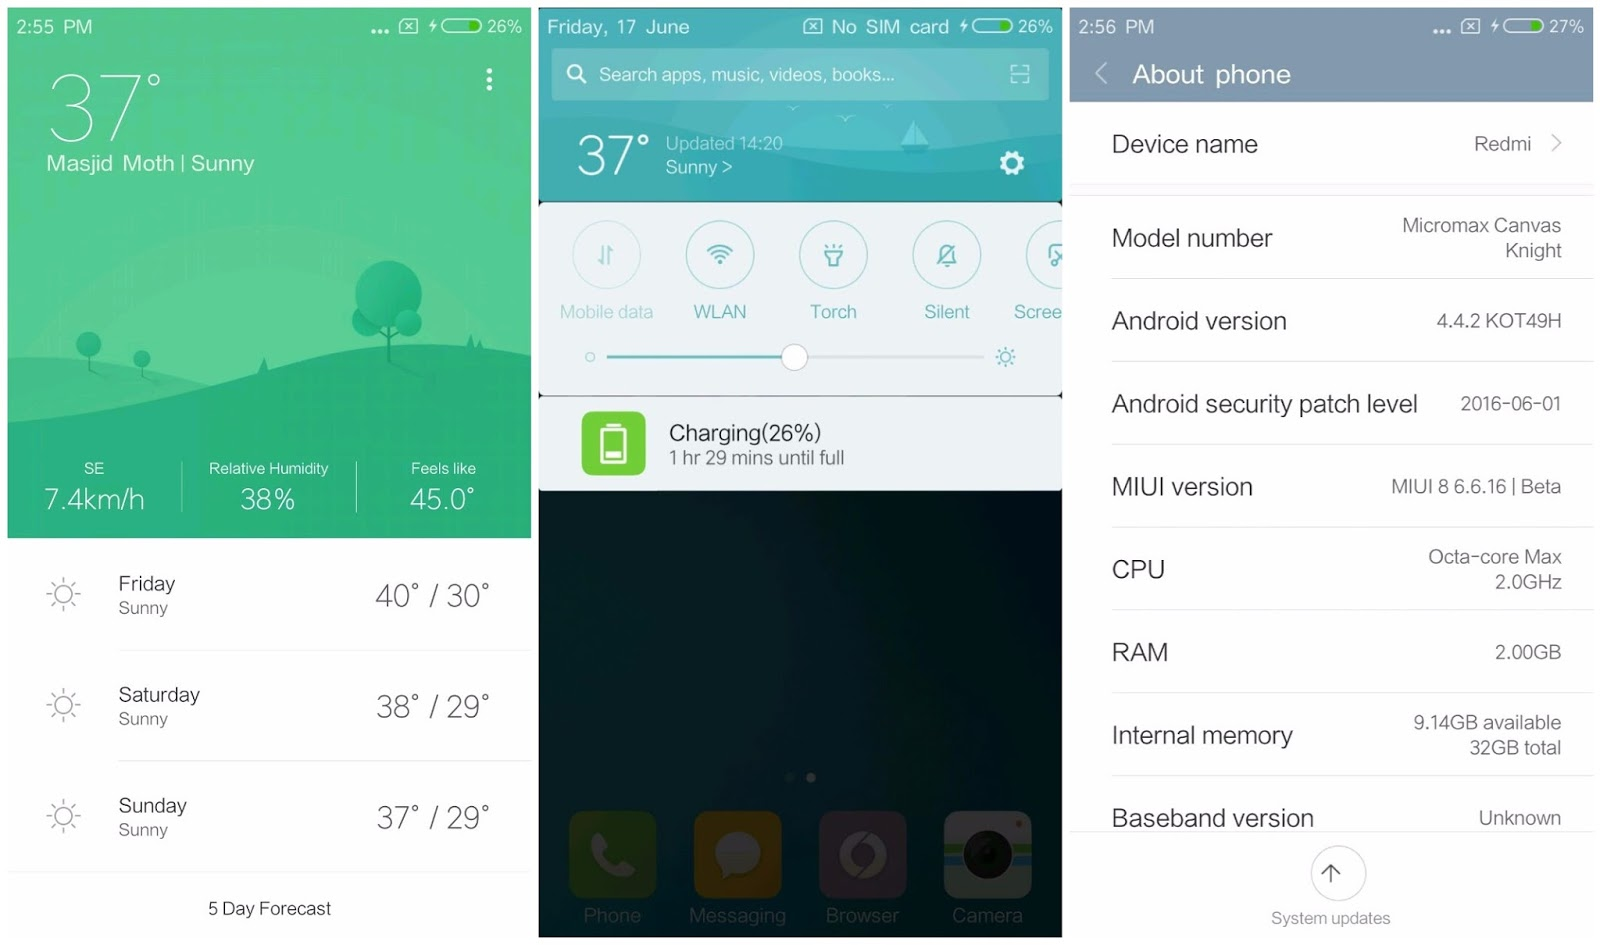 Enable Wallpaper Carousel On Miui 8 2: MIUI 8 Global Beta (6.10.20 V8) Canvas Knight V3 MT6592